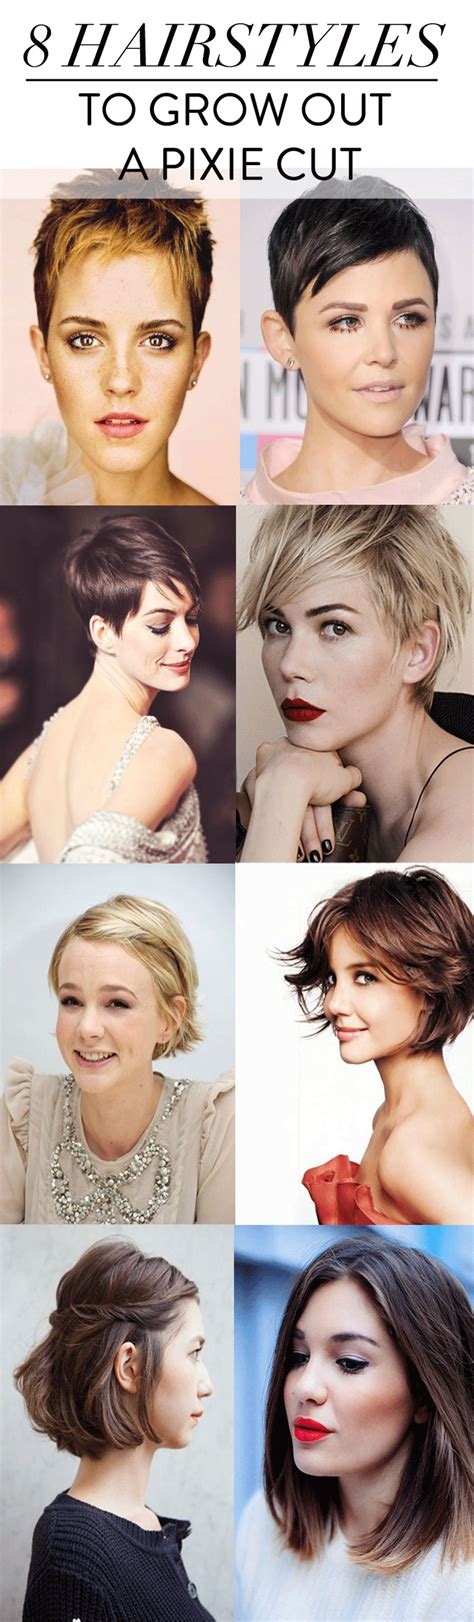 Hairstyles For Growing Out A Pixie Cut by How To Grow Out A Pixie Cut Charmingly Styled